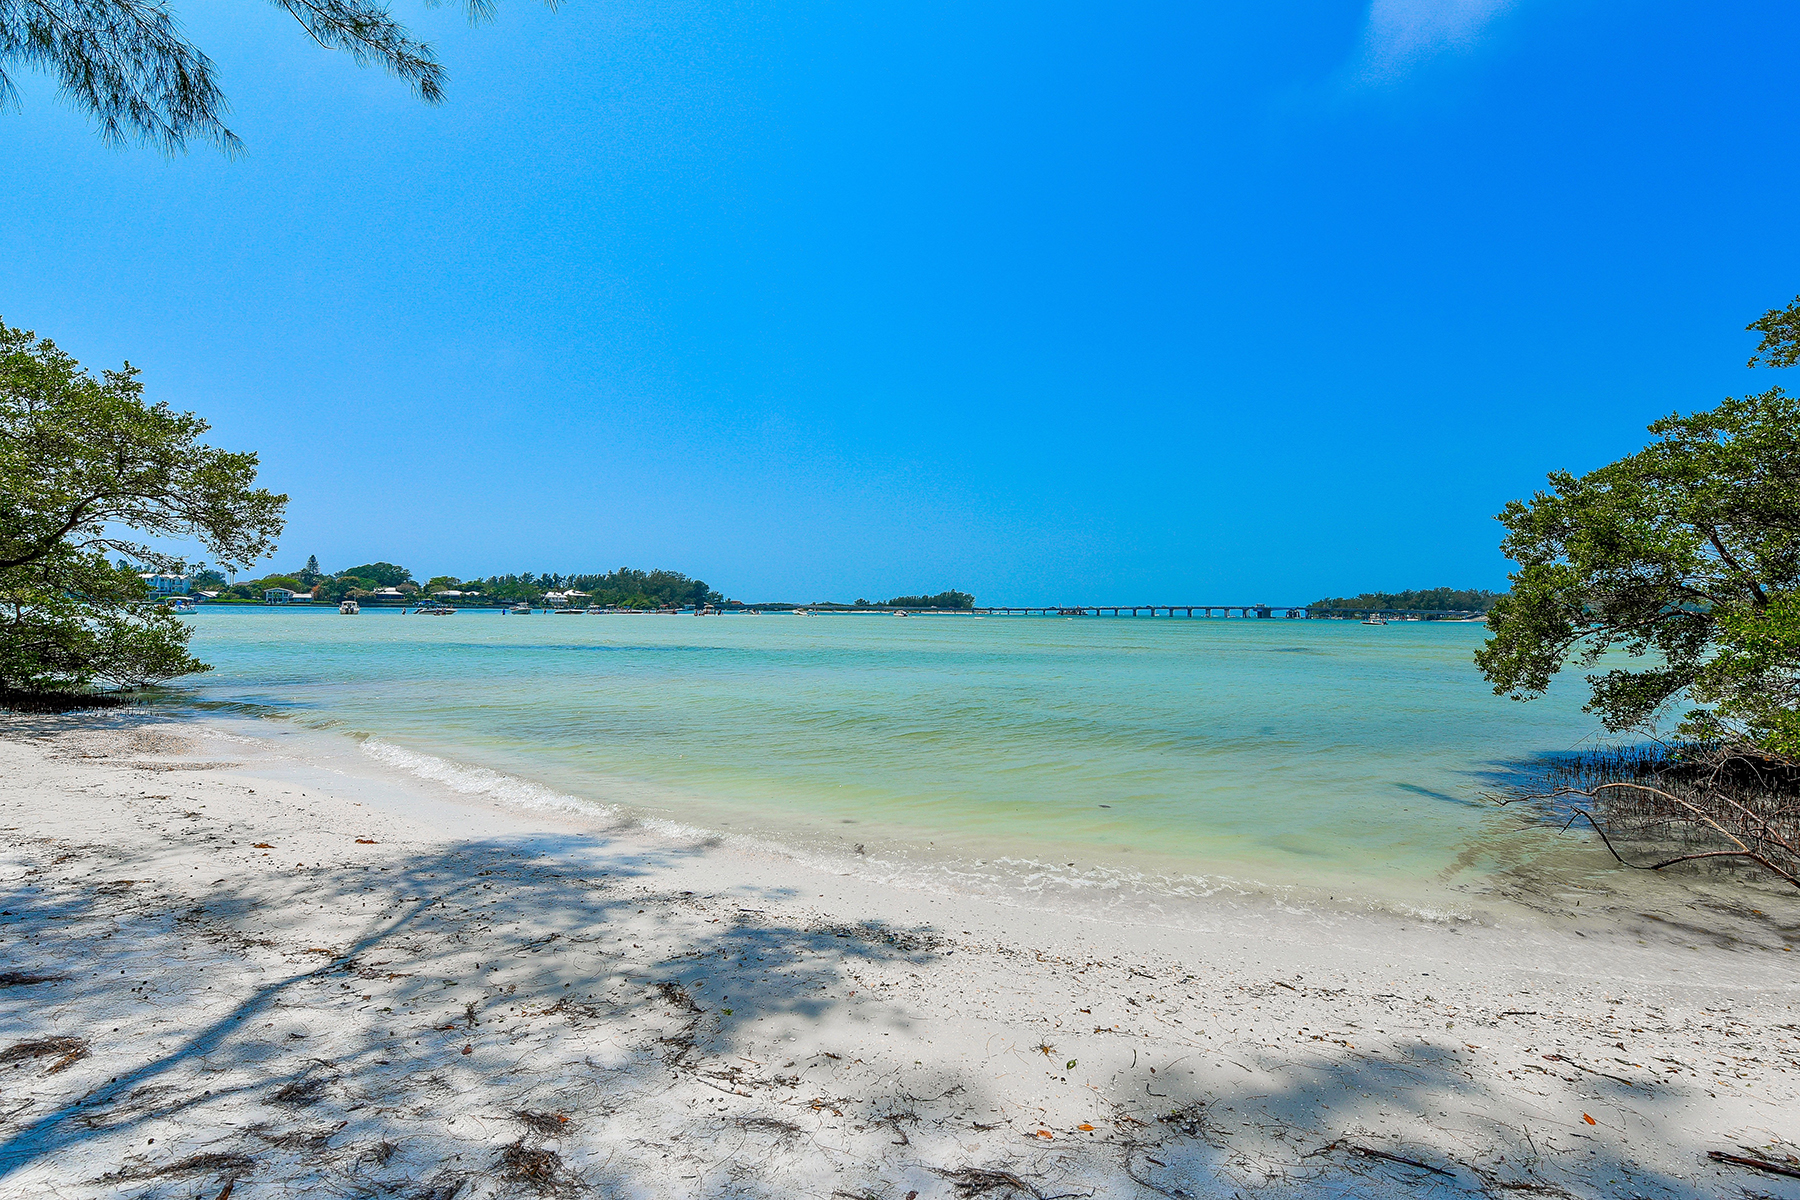 Land for Sale at LA LENAIRE ISLE 7149 La Lenaire Dr 8 9 Longboat Key, Florida, 34228 United States